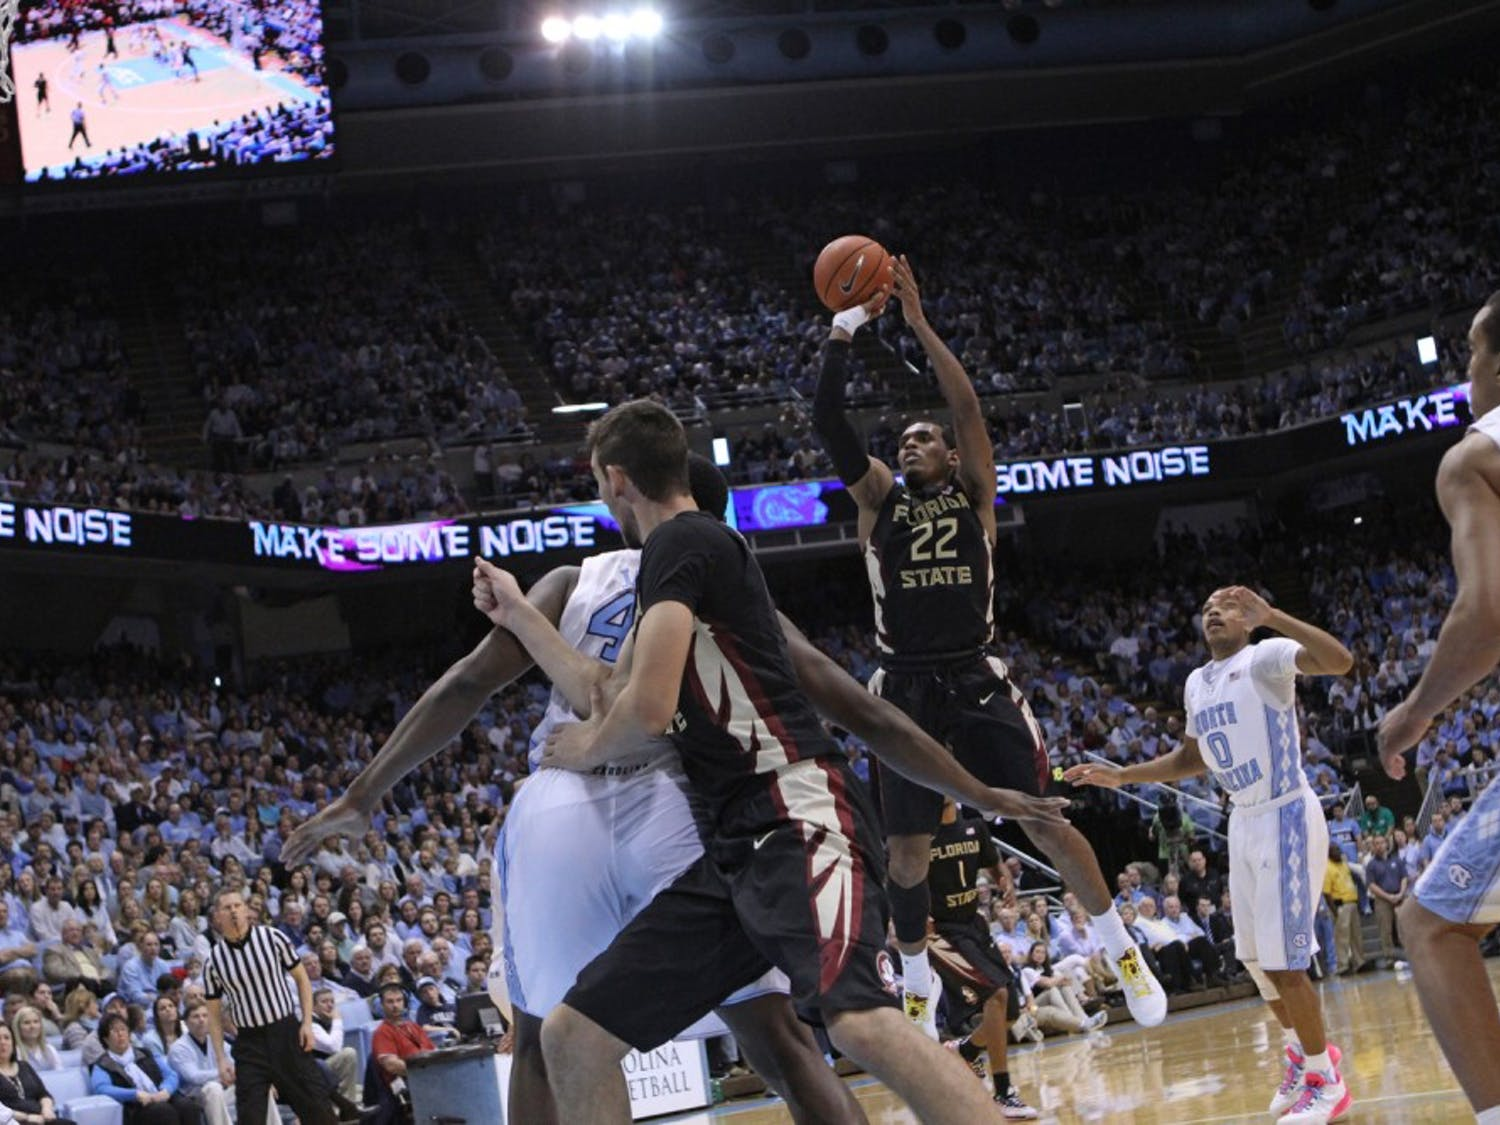 Florida State freshman guard Xavier Rathan-Mayes (22) had 35 points against the Tar Heels.